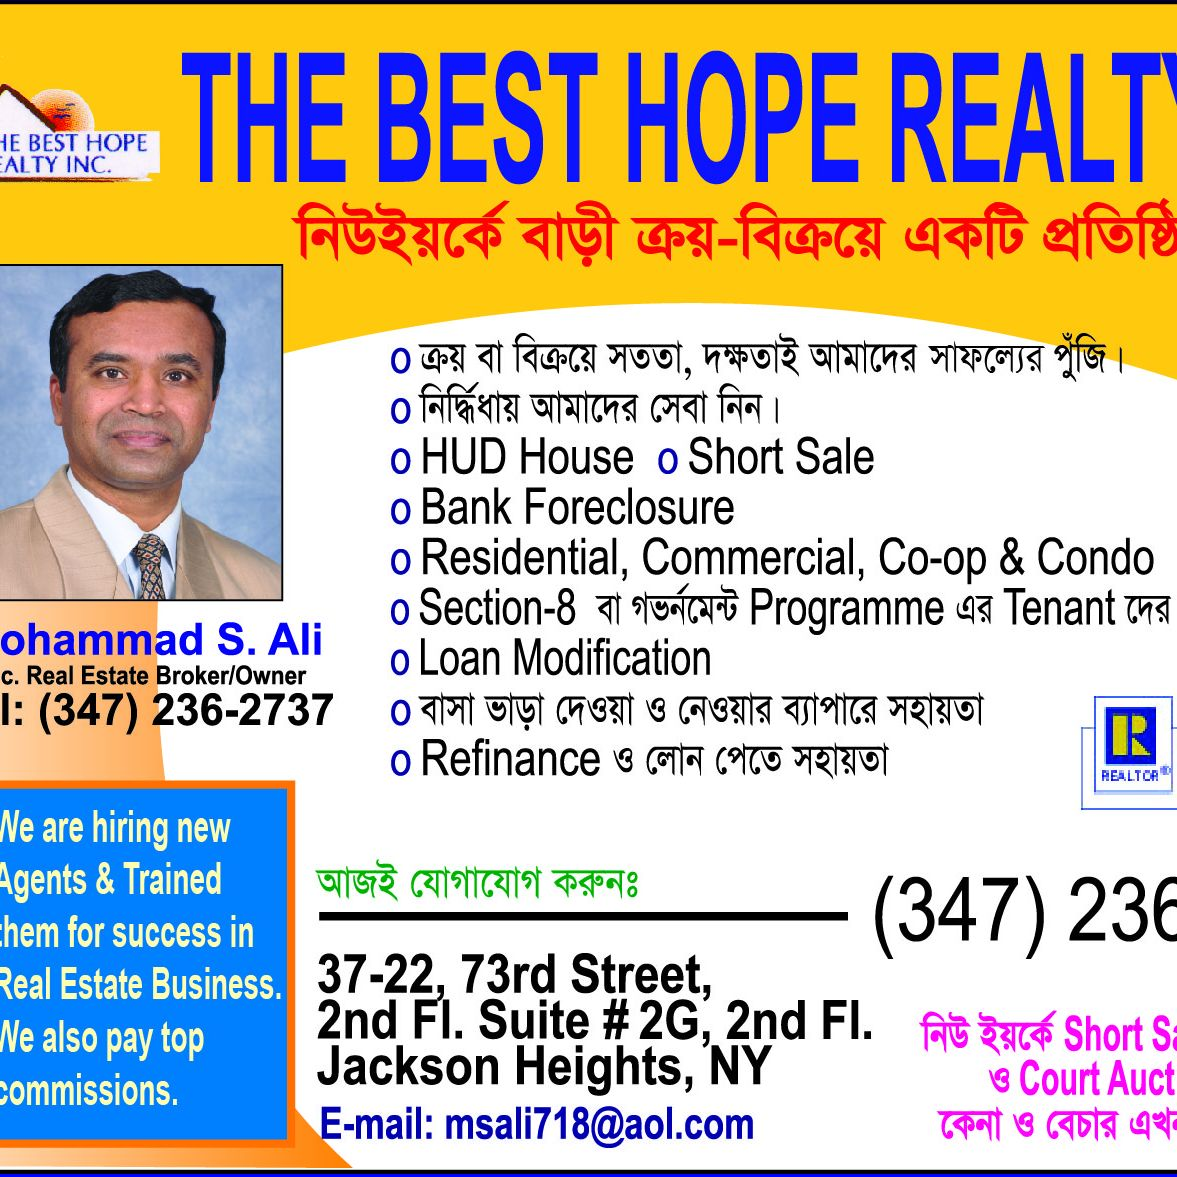 The Best Hope Realty Inc